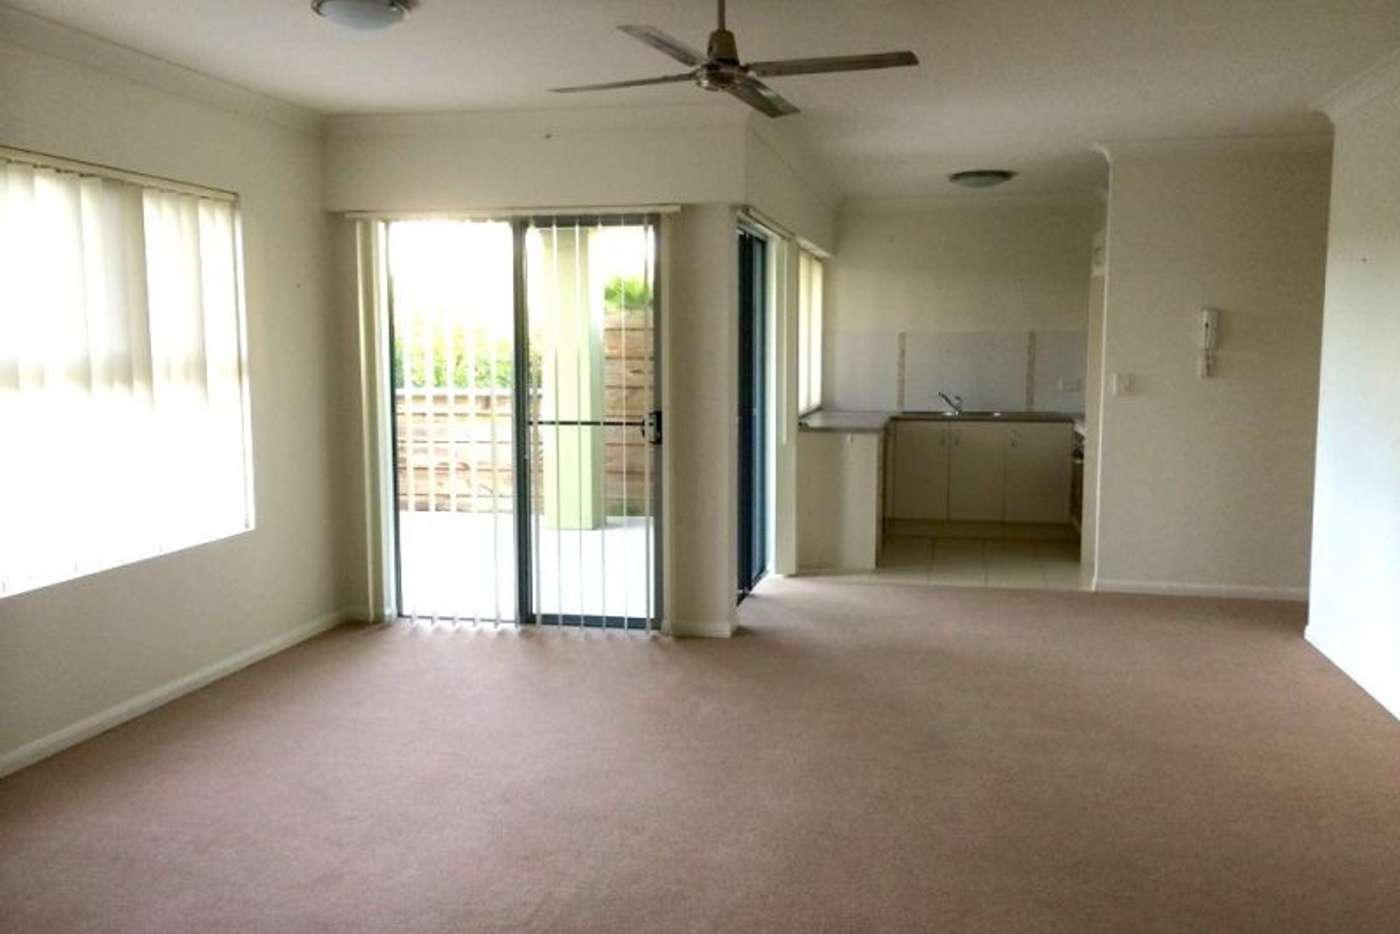 Sixth view of Homely unit listing, 9/1 Hinterland Drive, Mudgeeraba QLD 4213